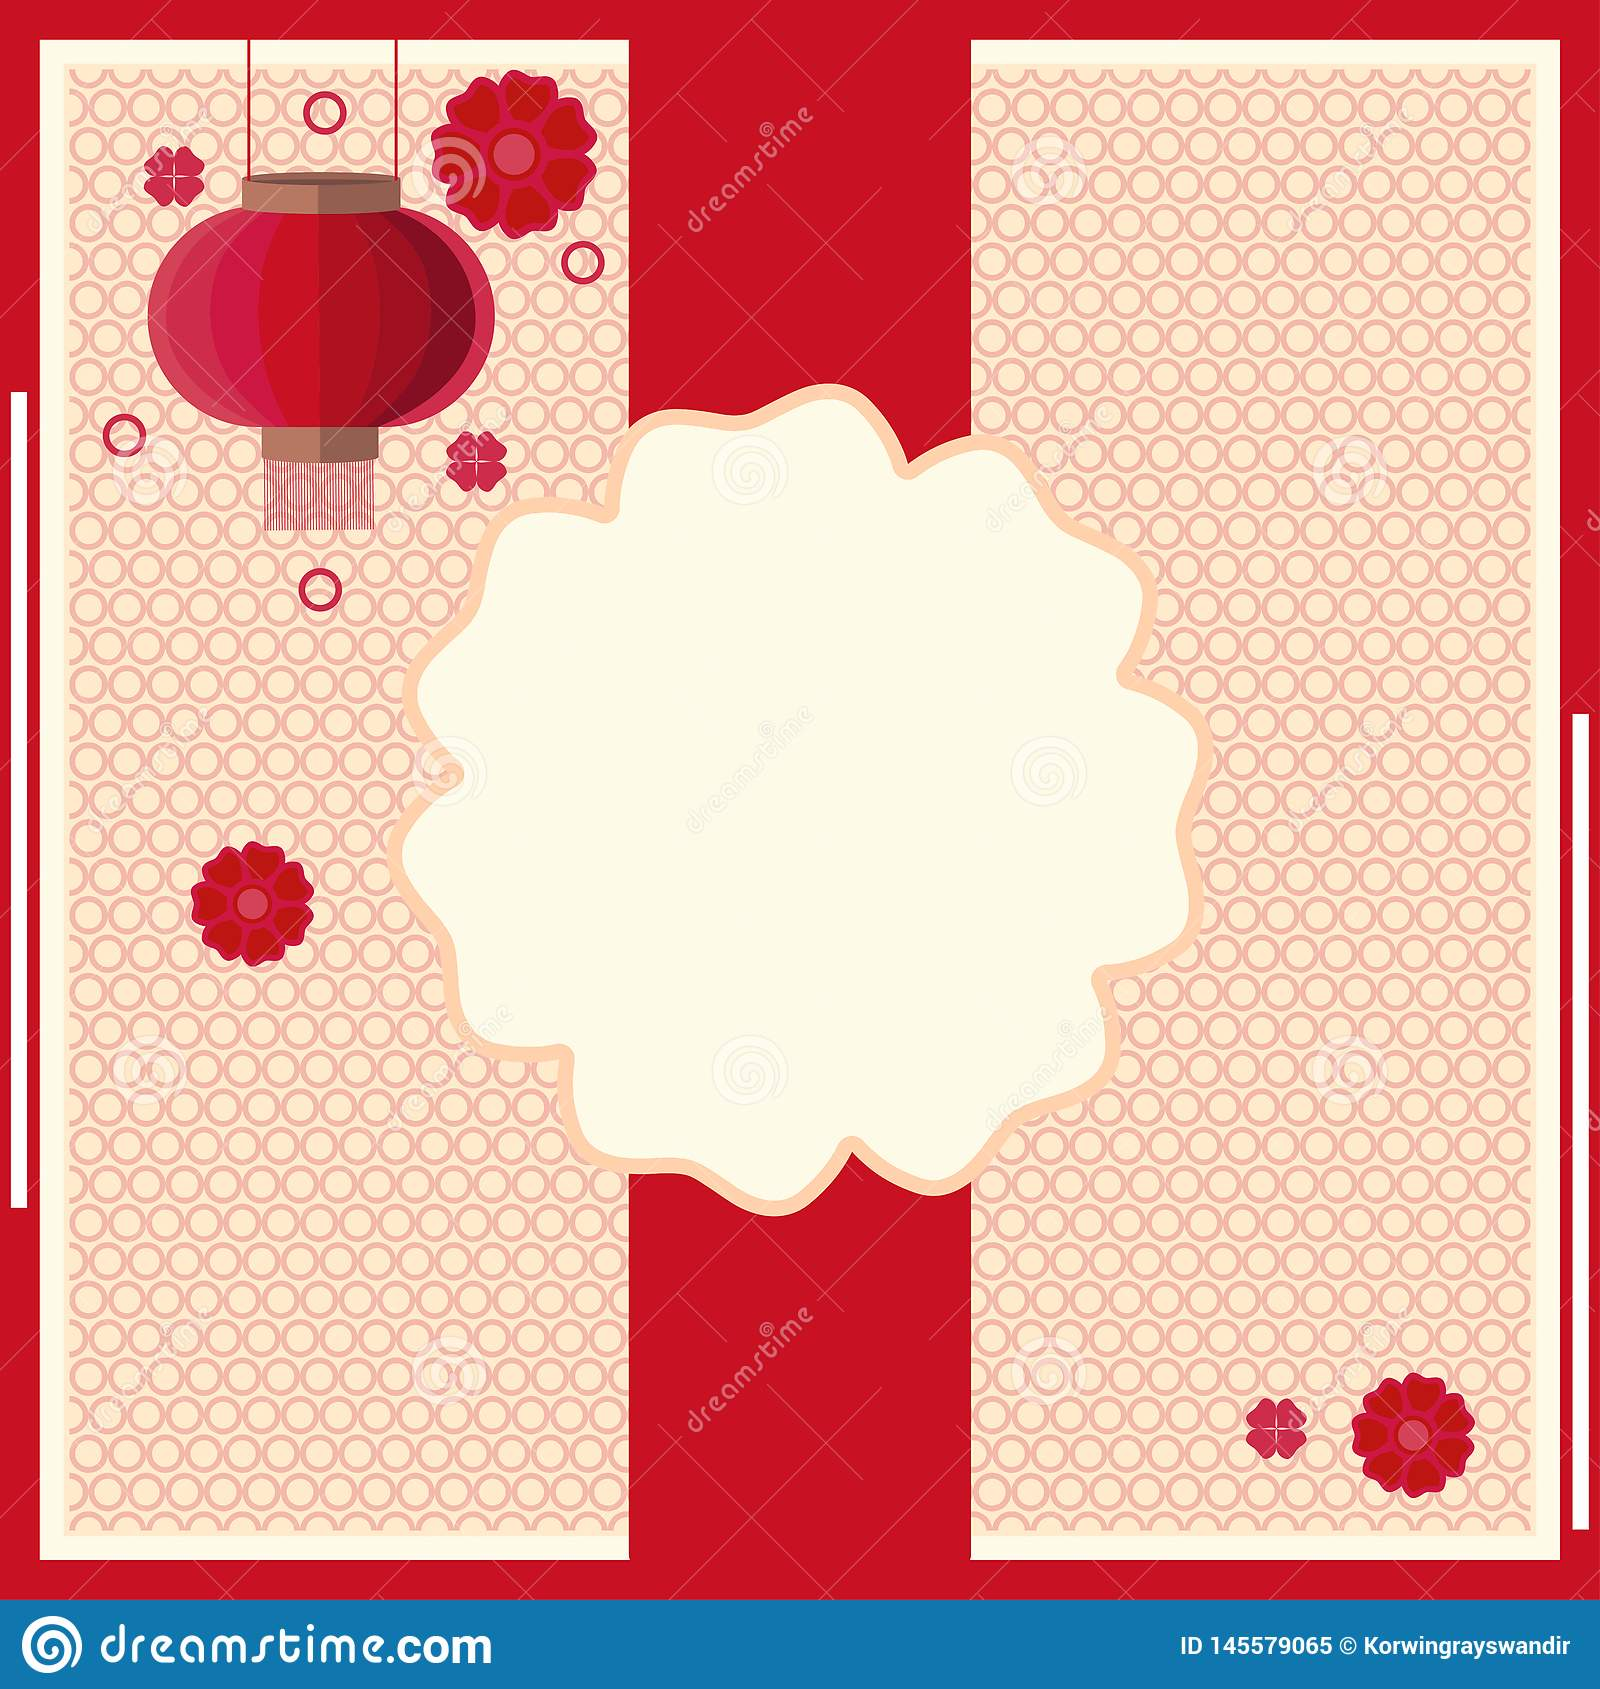 Asian style background with flashlight and copy space flowers used as template for posters, banners, flyers and other